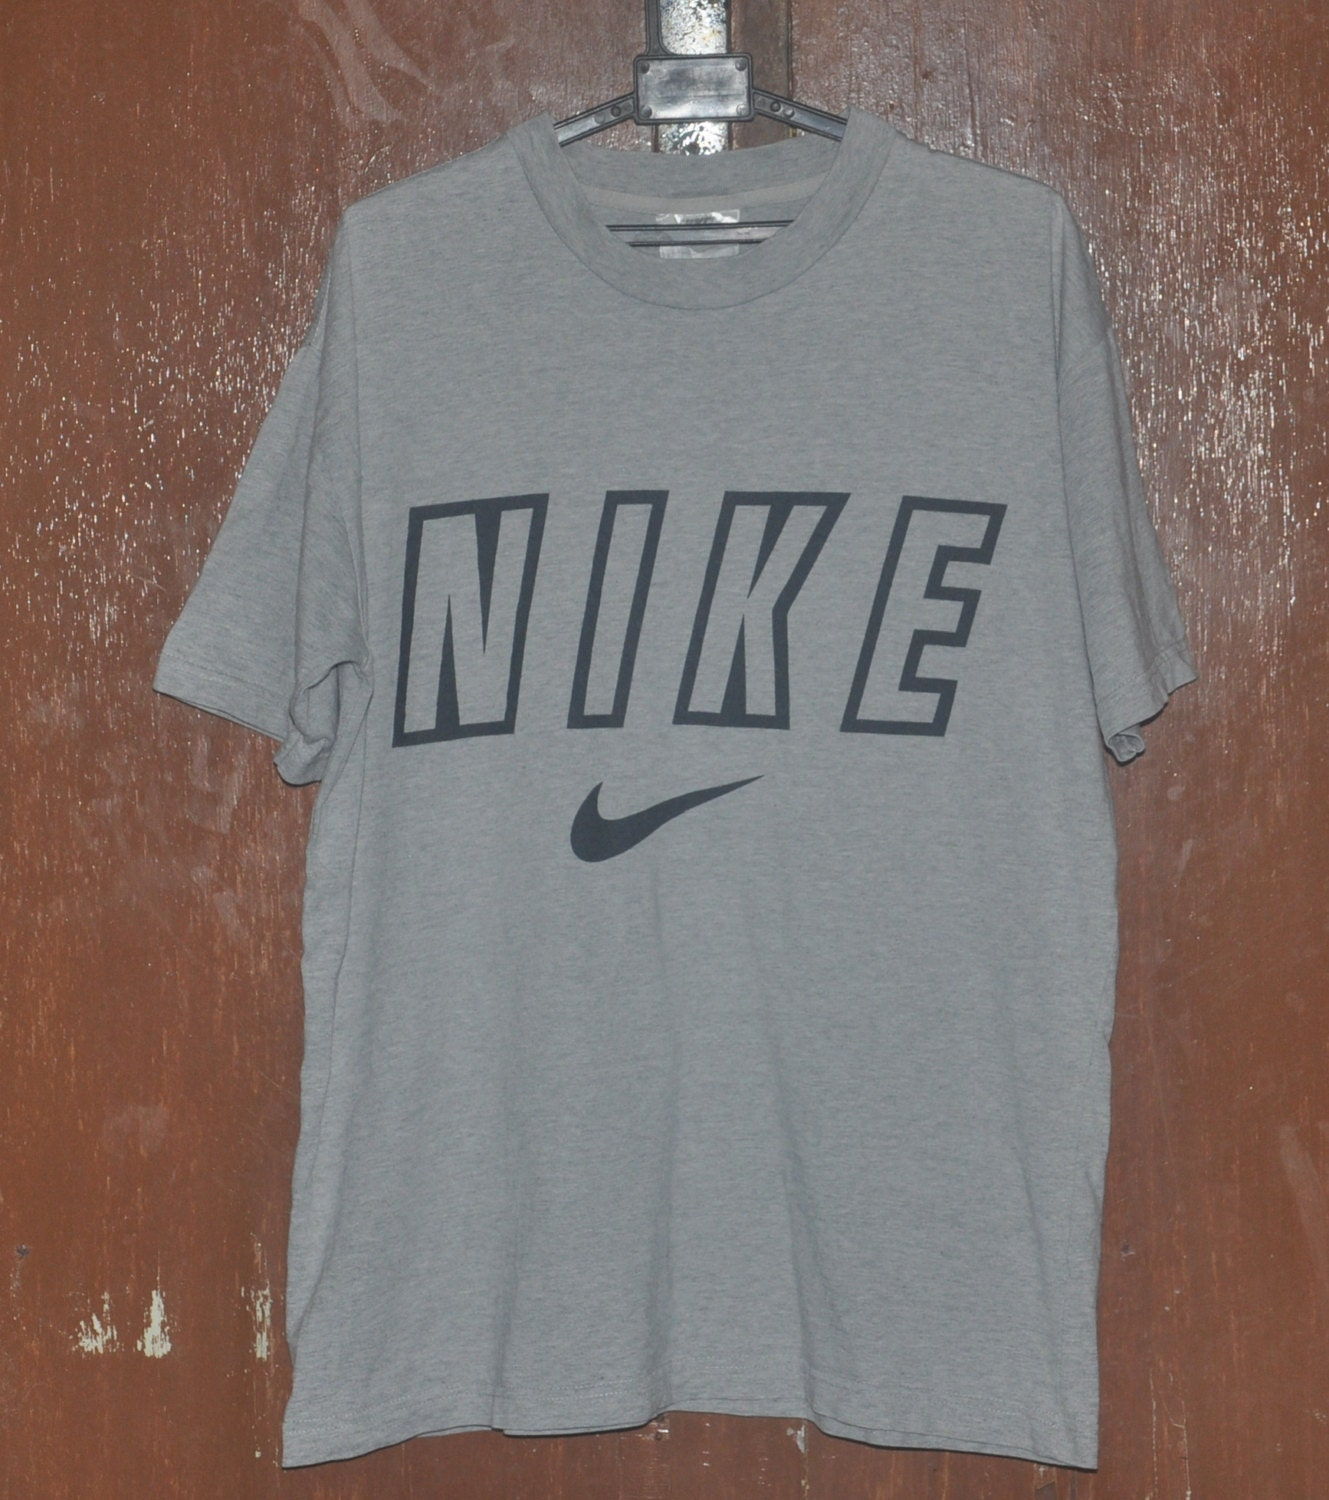 Nike swoosh big logo tee size medium 90s vintage t shirt for Nike swoosh logo t shirt